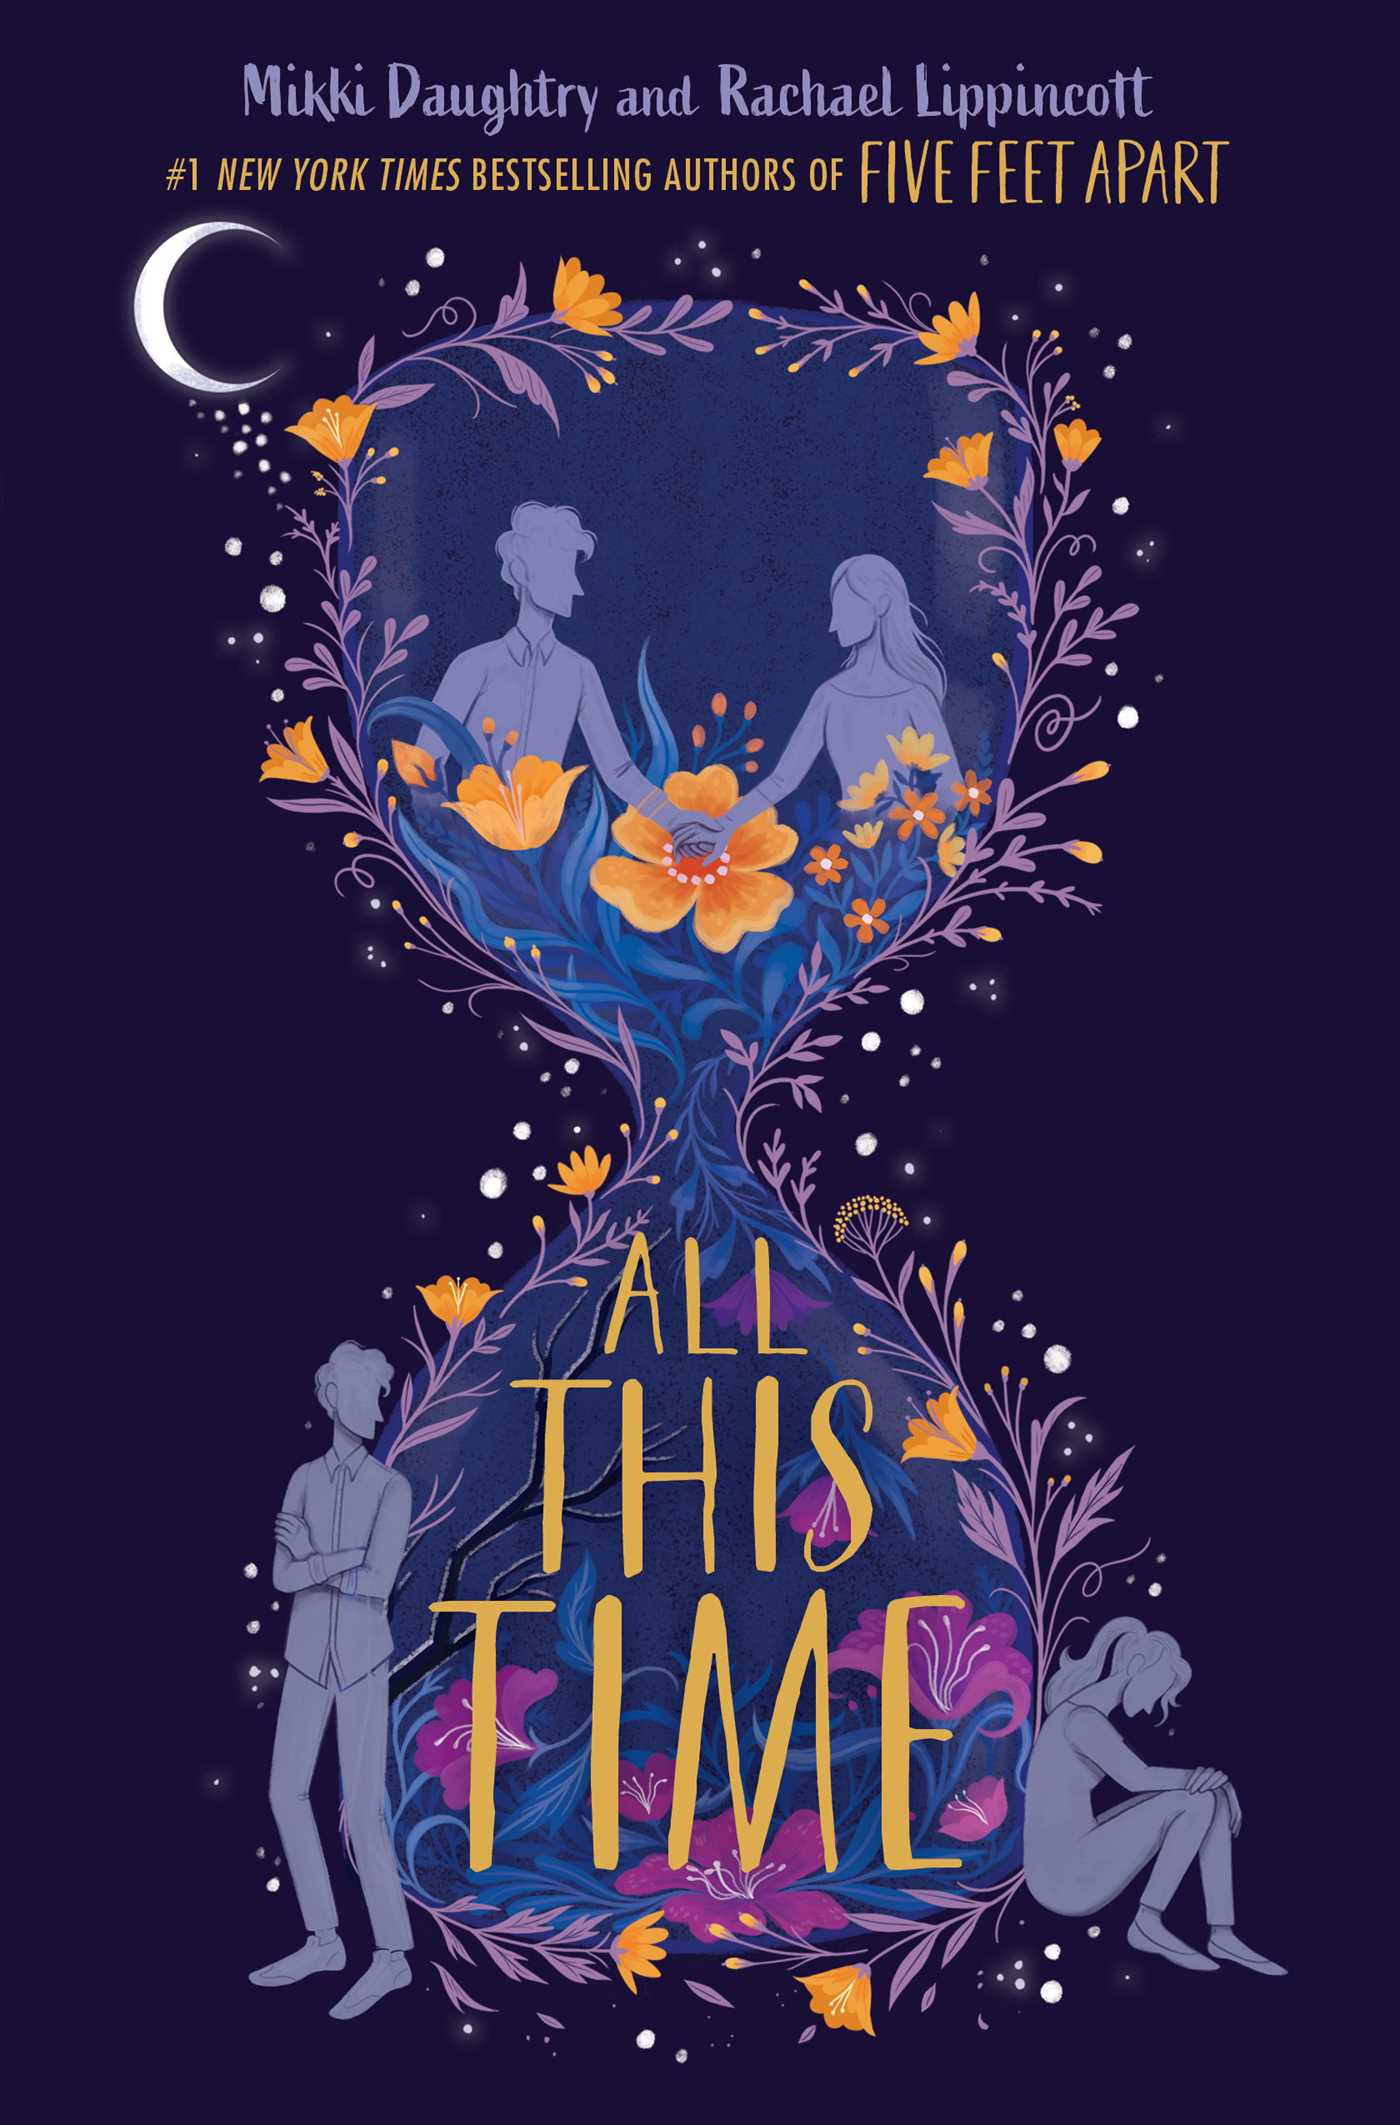 Book Review: All This Time by Mikki Daughtry and Rachael Lippincott